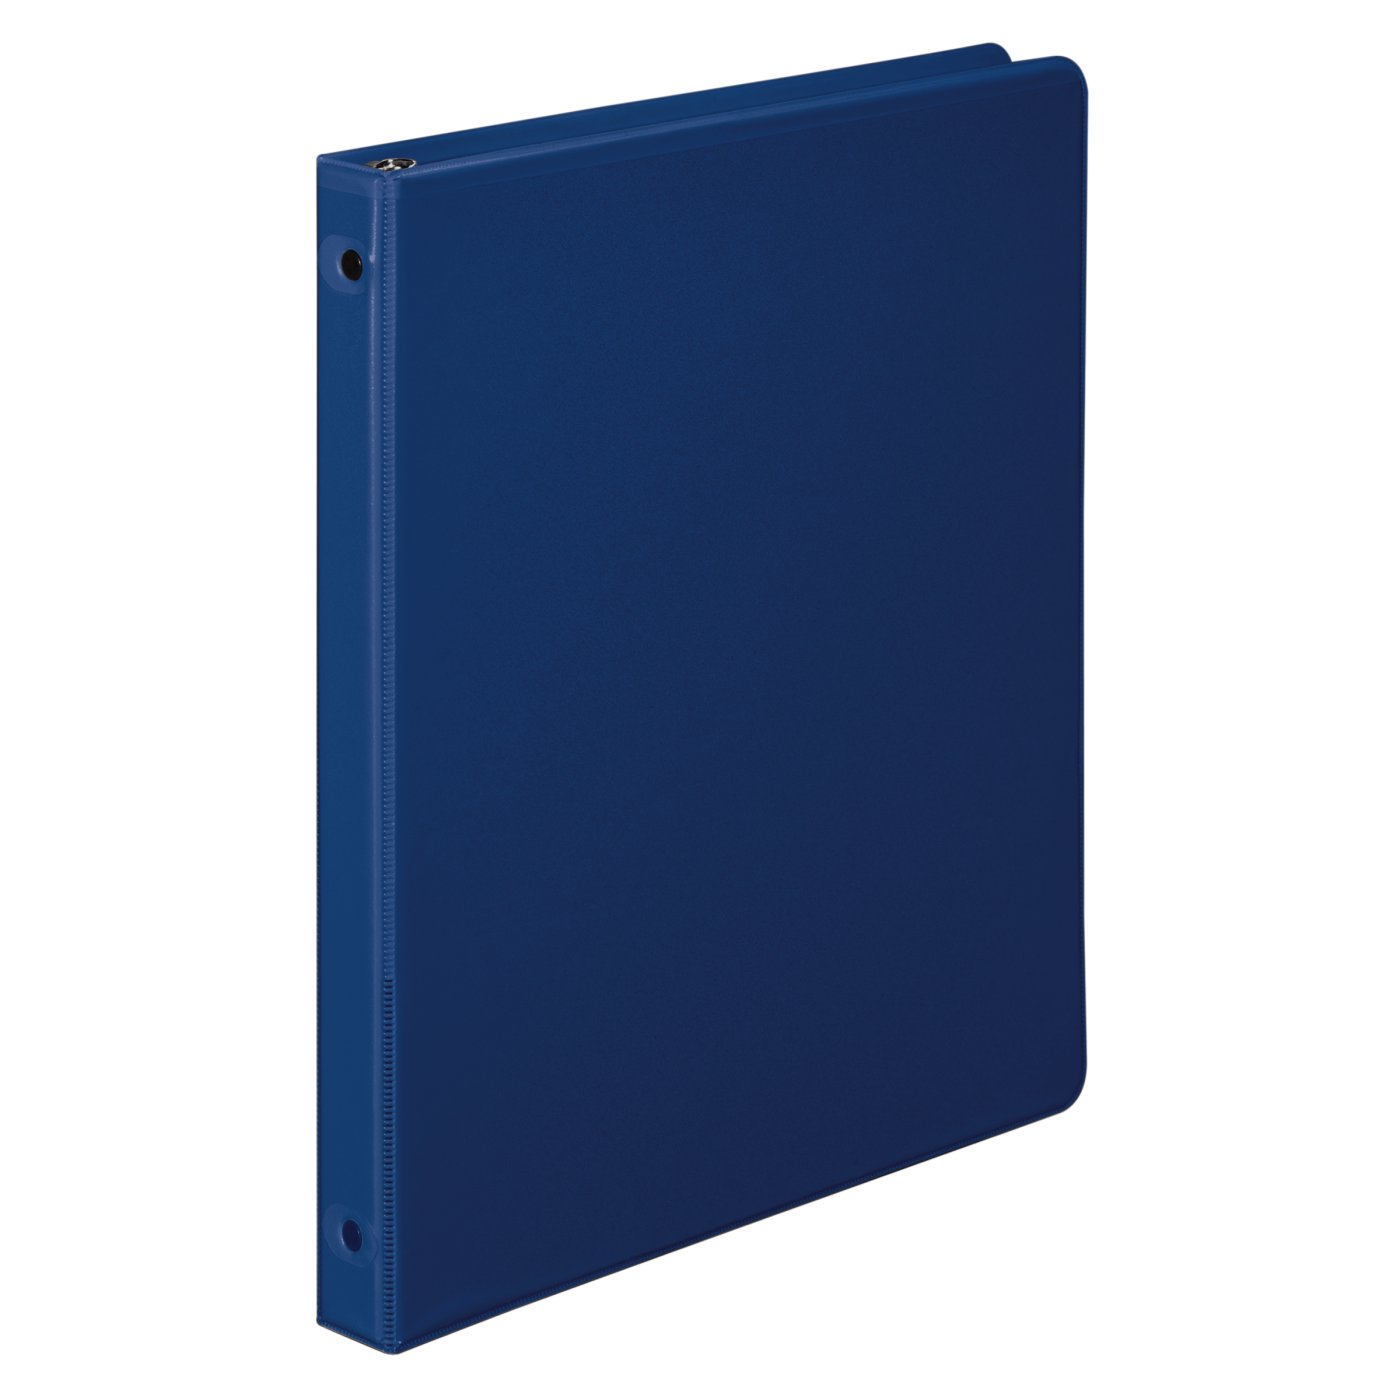 Wilson Jones - Binders - Basic Binders - Wilson Jones® 362 Basic ...